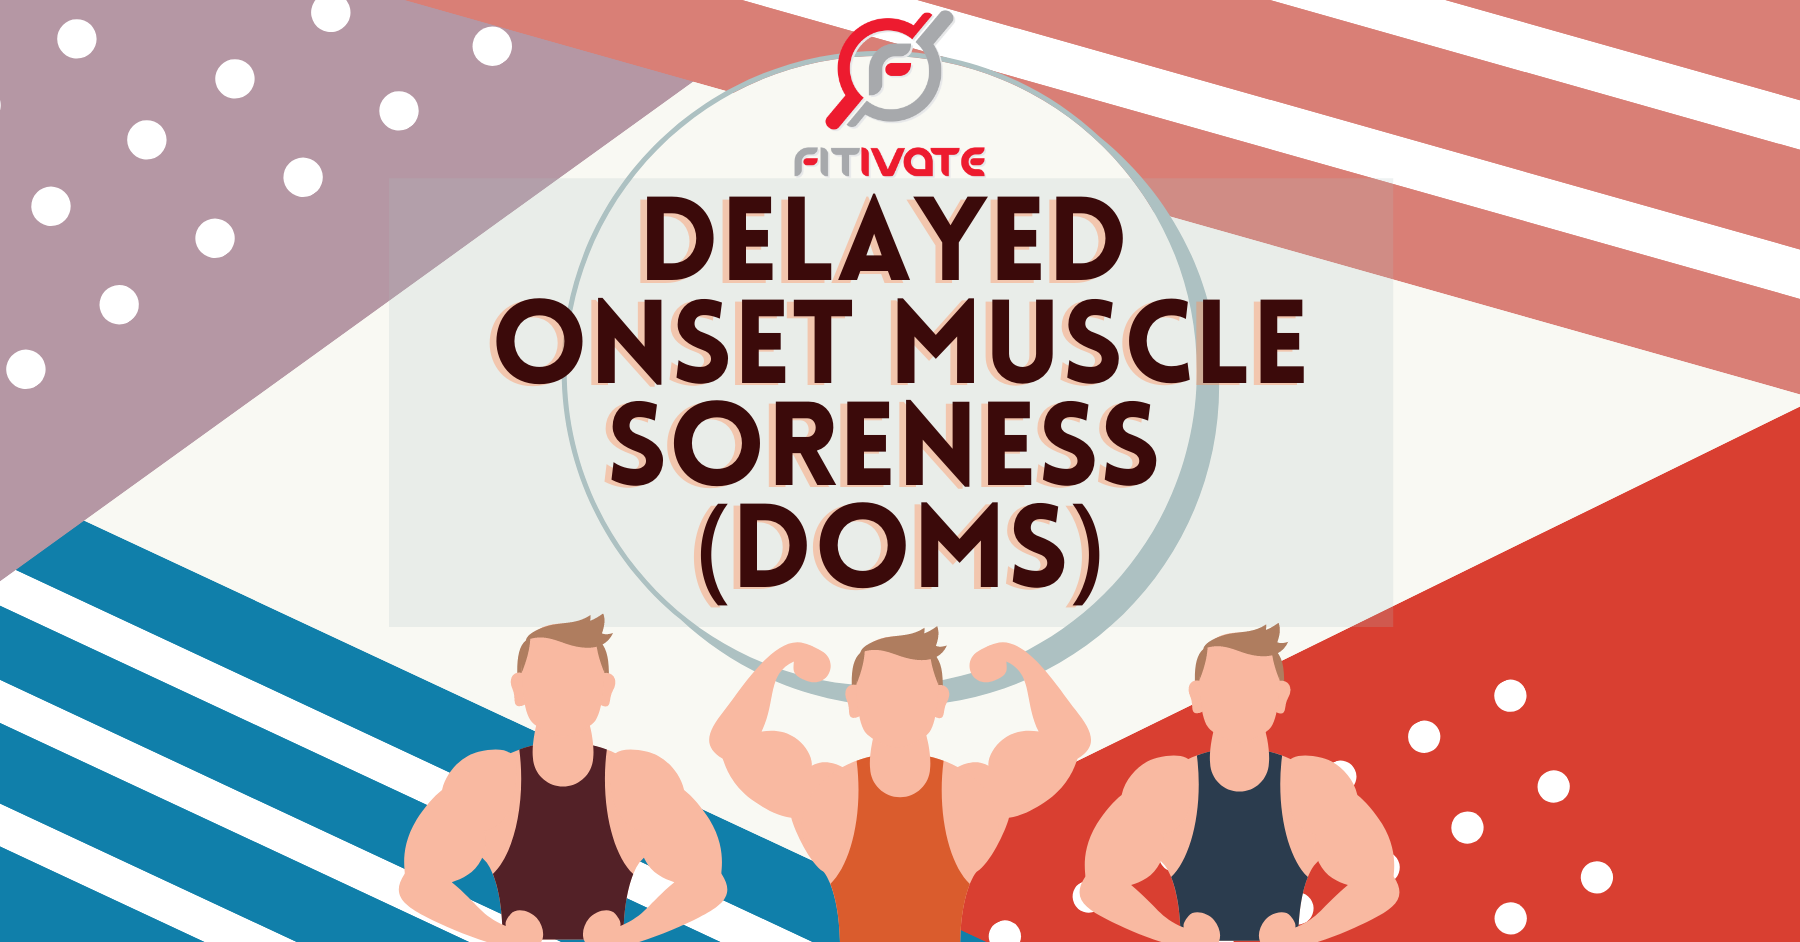 muscle soreness recovery, muscle soreness after workout, muscle soreness working out, how to muscle soreness recovery